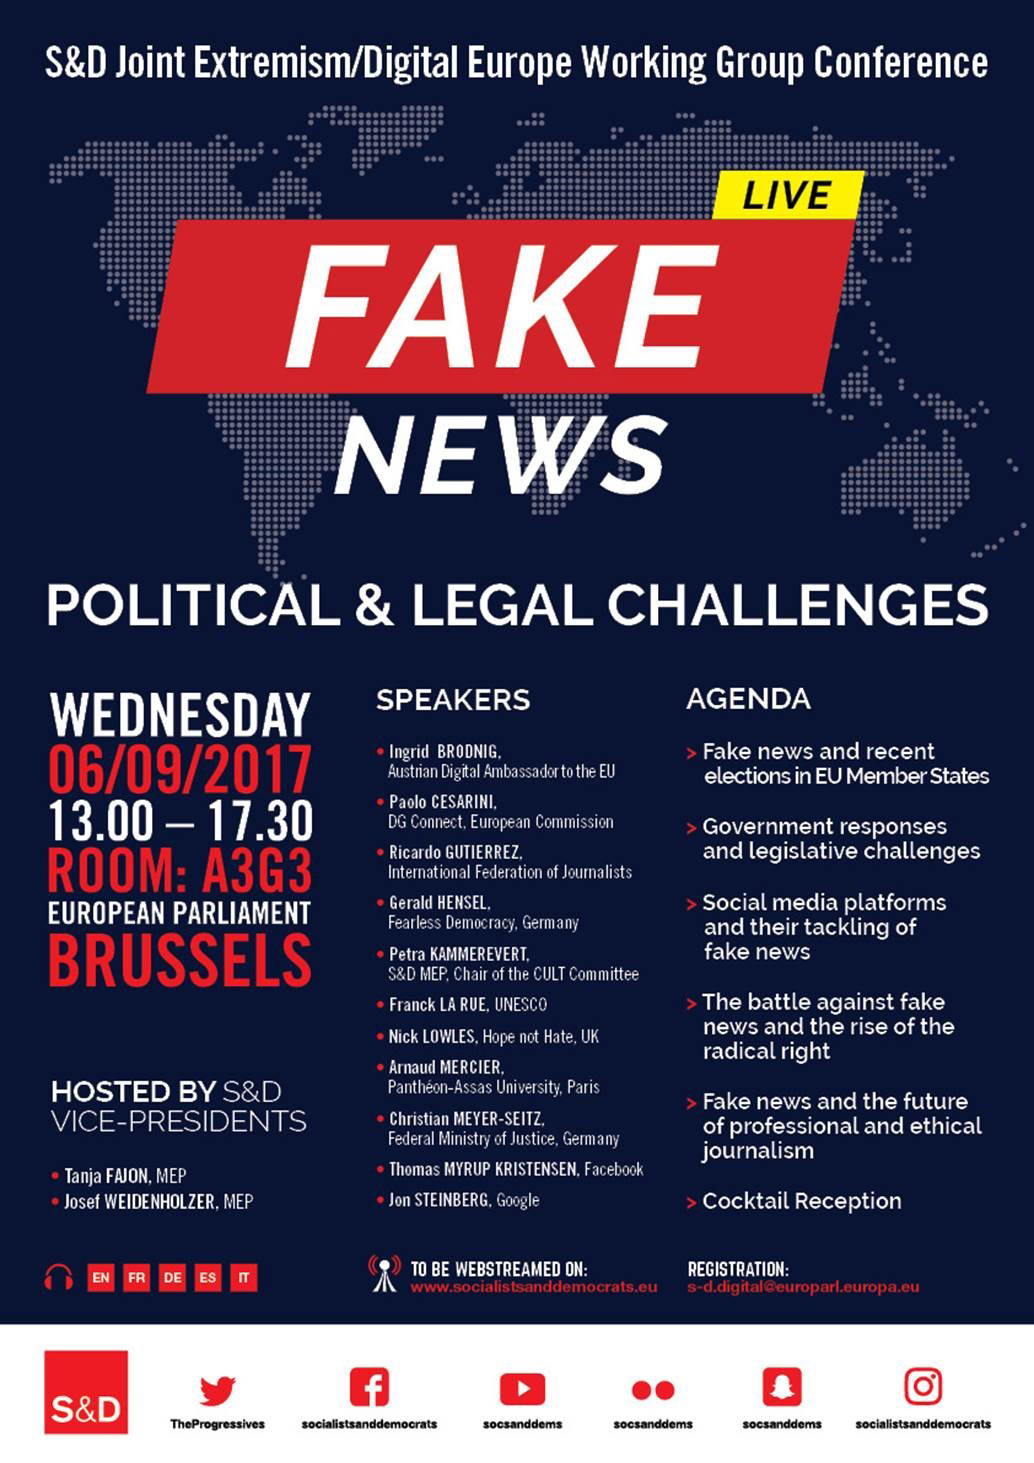 S&D Joint Extremism/Digital Europe Working Group Conference - Fake News: Political and Legal Challenges.